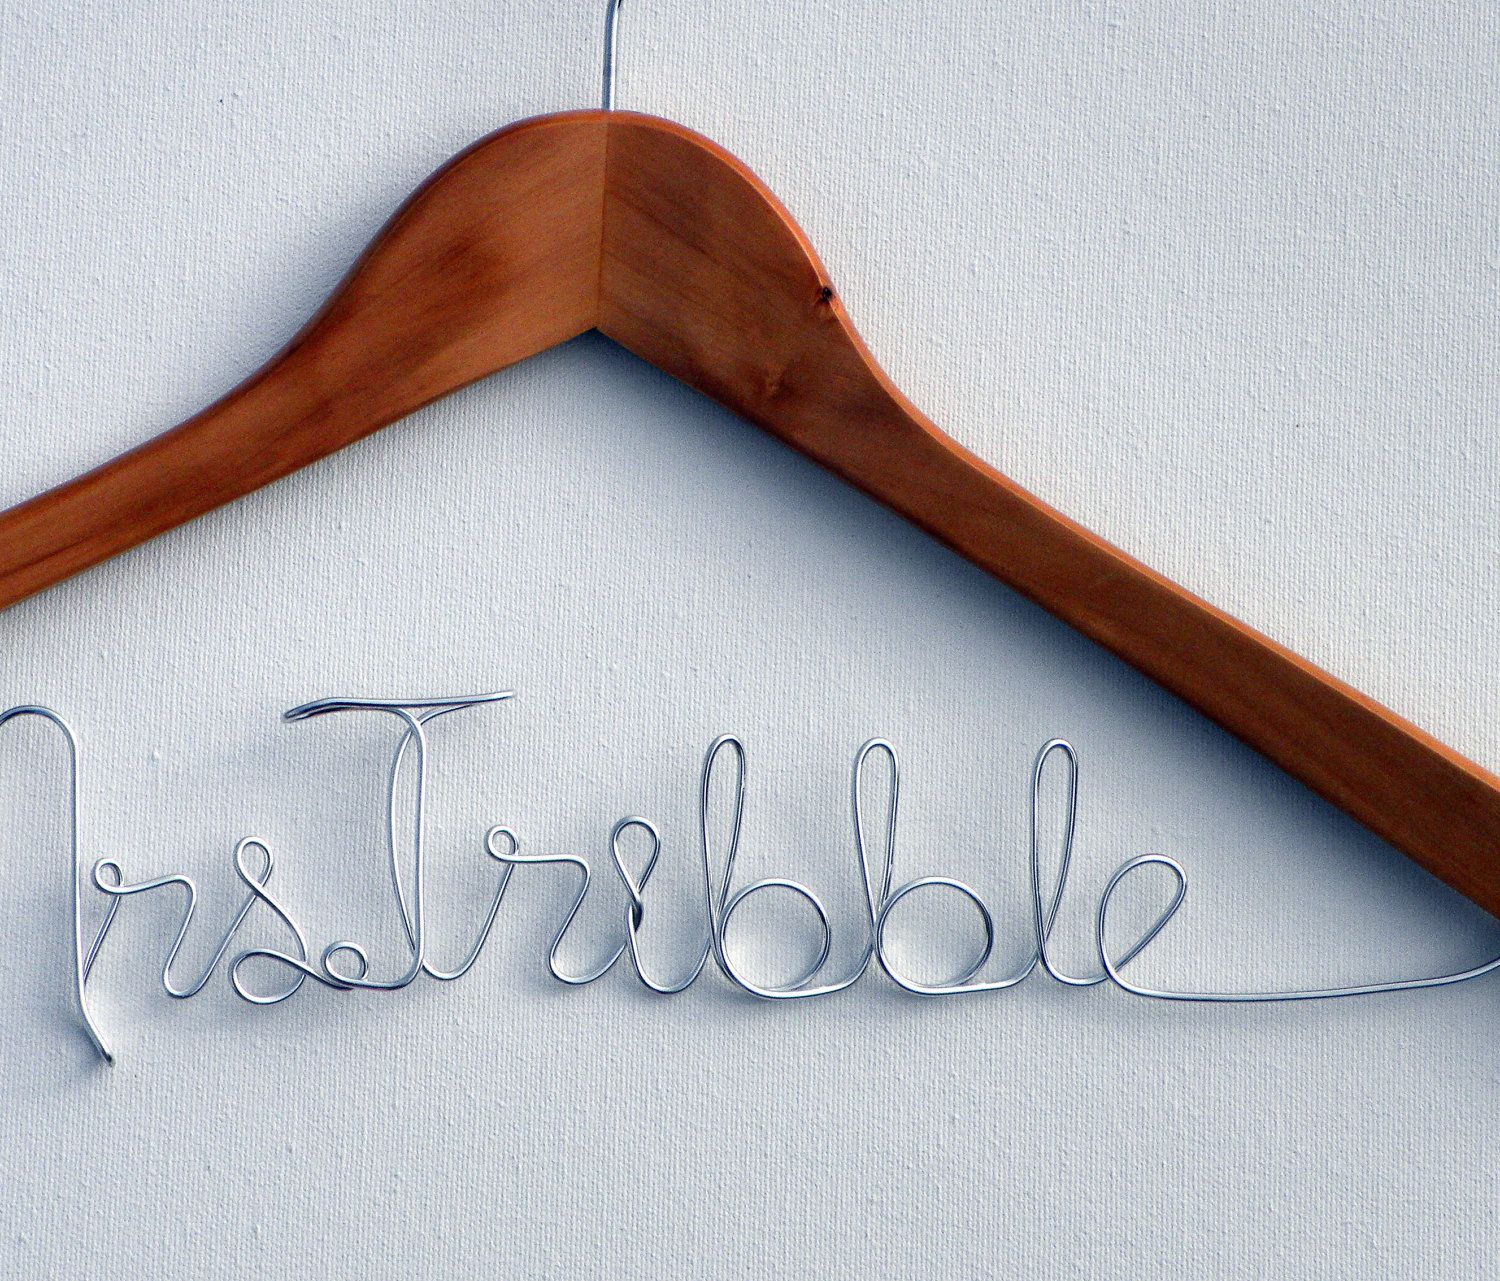 Wedding Dress Personalized Hanger Custom Wording Promo Item Prop My cousin got one of these at her wedding cute idea